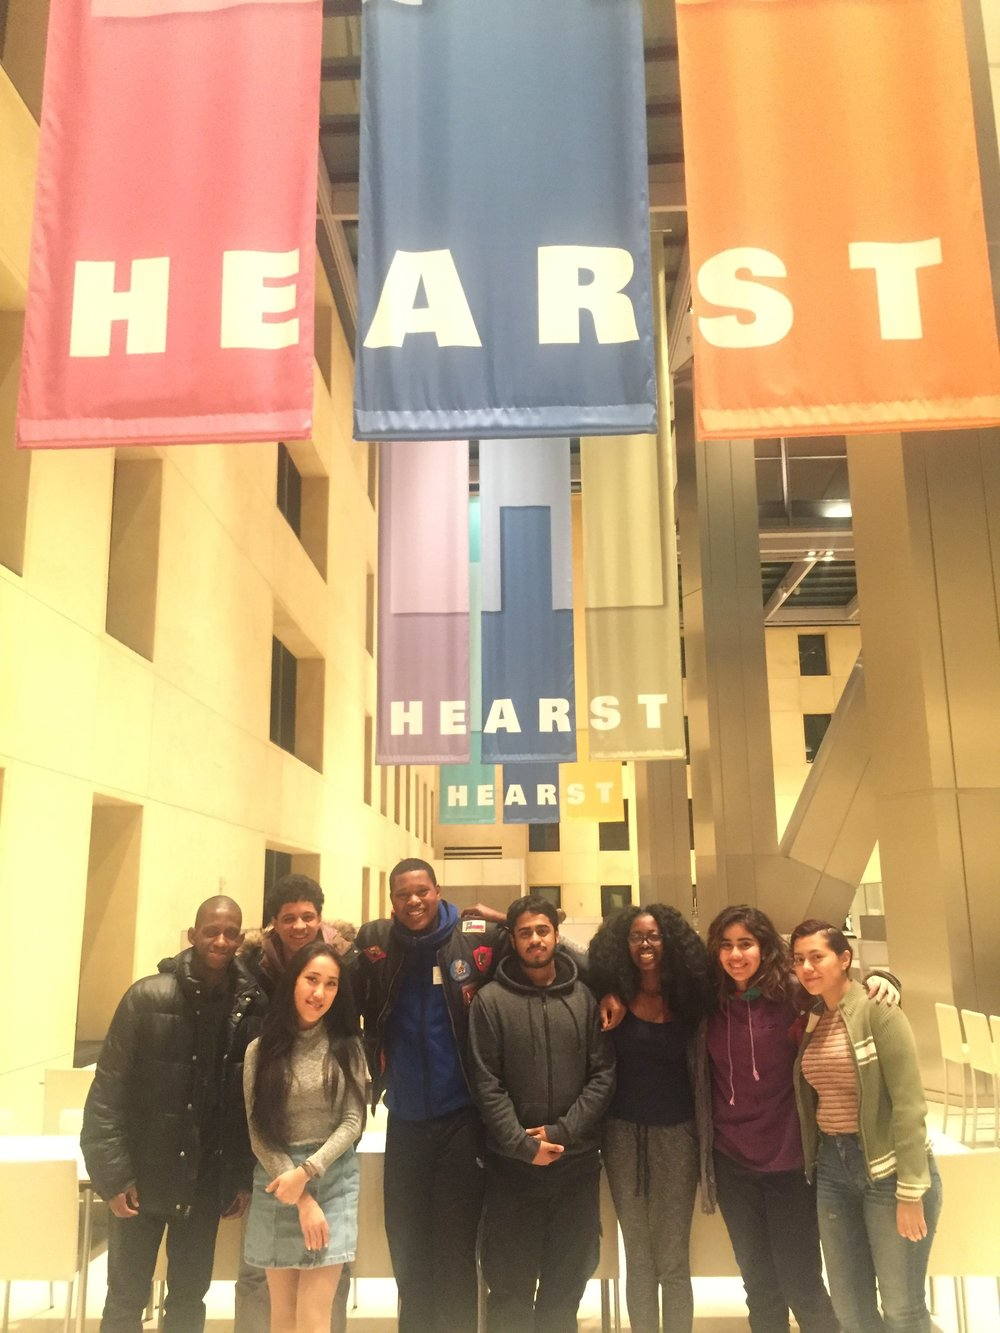 editing our college essays at hearst tower  project rousseau  of the support they give each other and the friendships they have  formed we are certain will last long after their high school graduation  this year